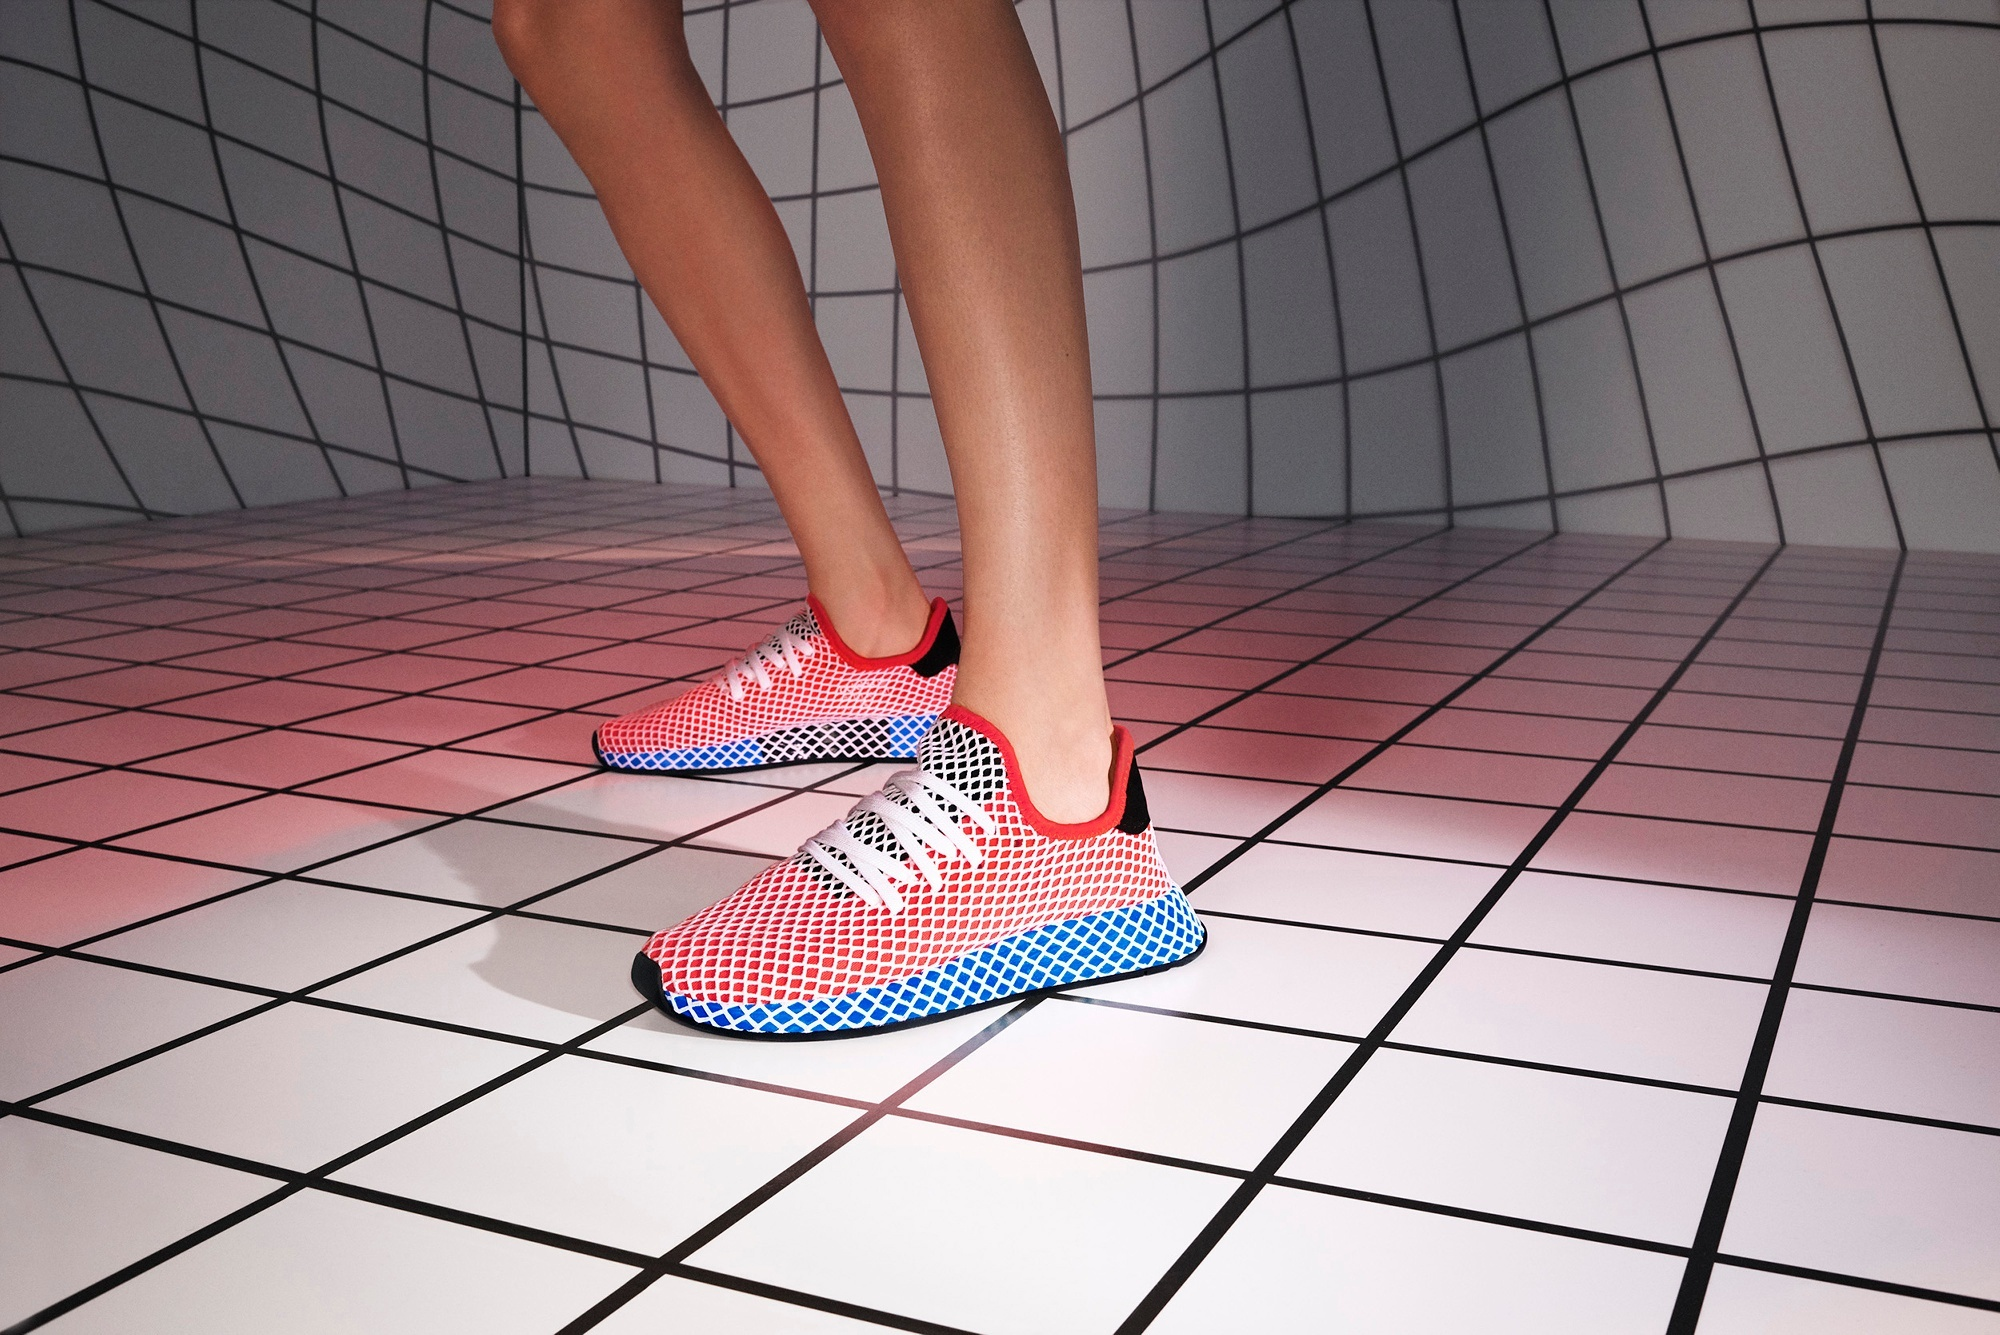 SS18_DEERUPT_QC2624_AC8466_DIRECTIONAL_ON_FOOT_13_012_RGB-1